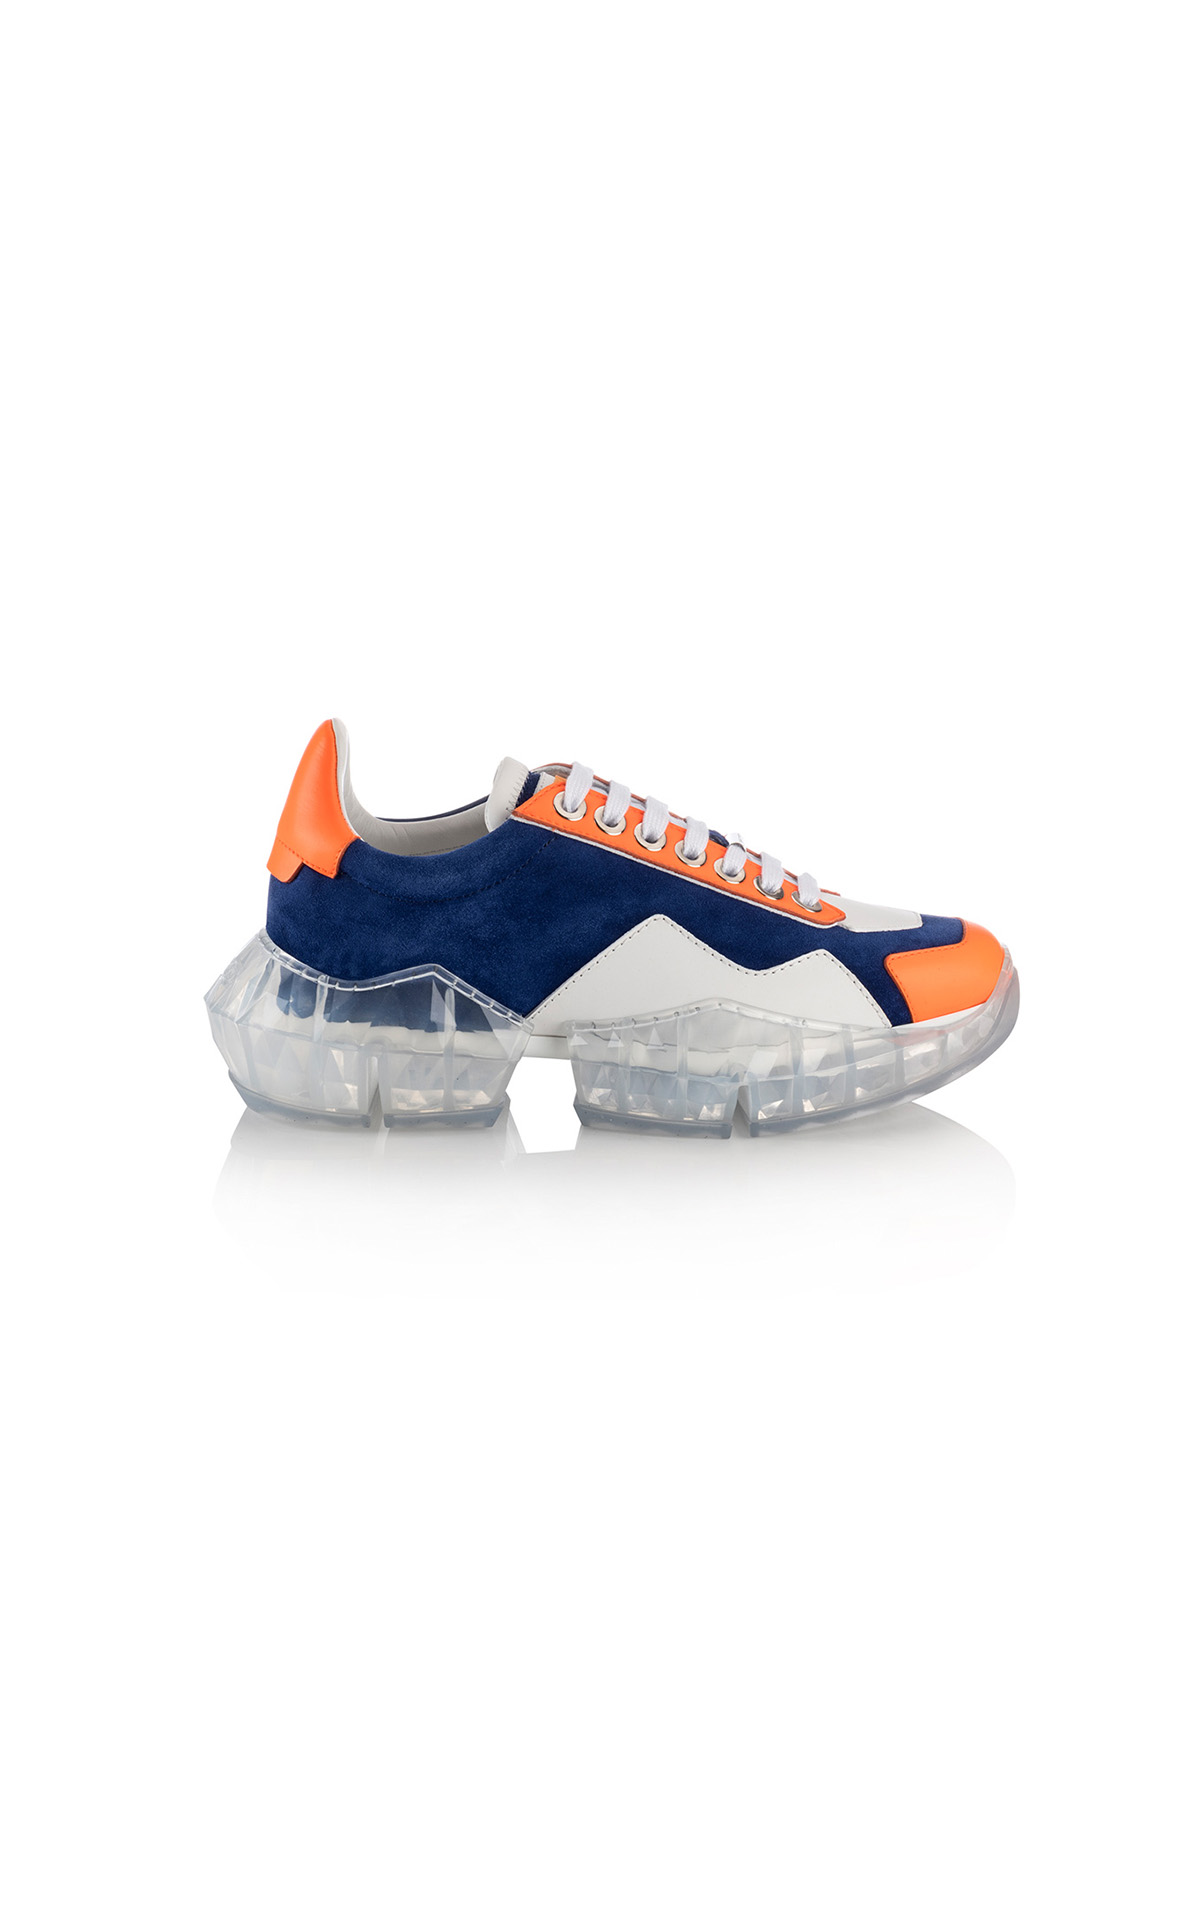 La Vallée Village Jimmy Choo Cobalt and neon orange sneakers